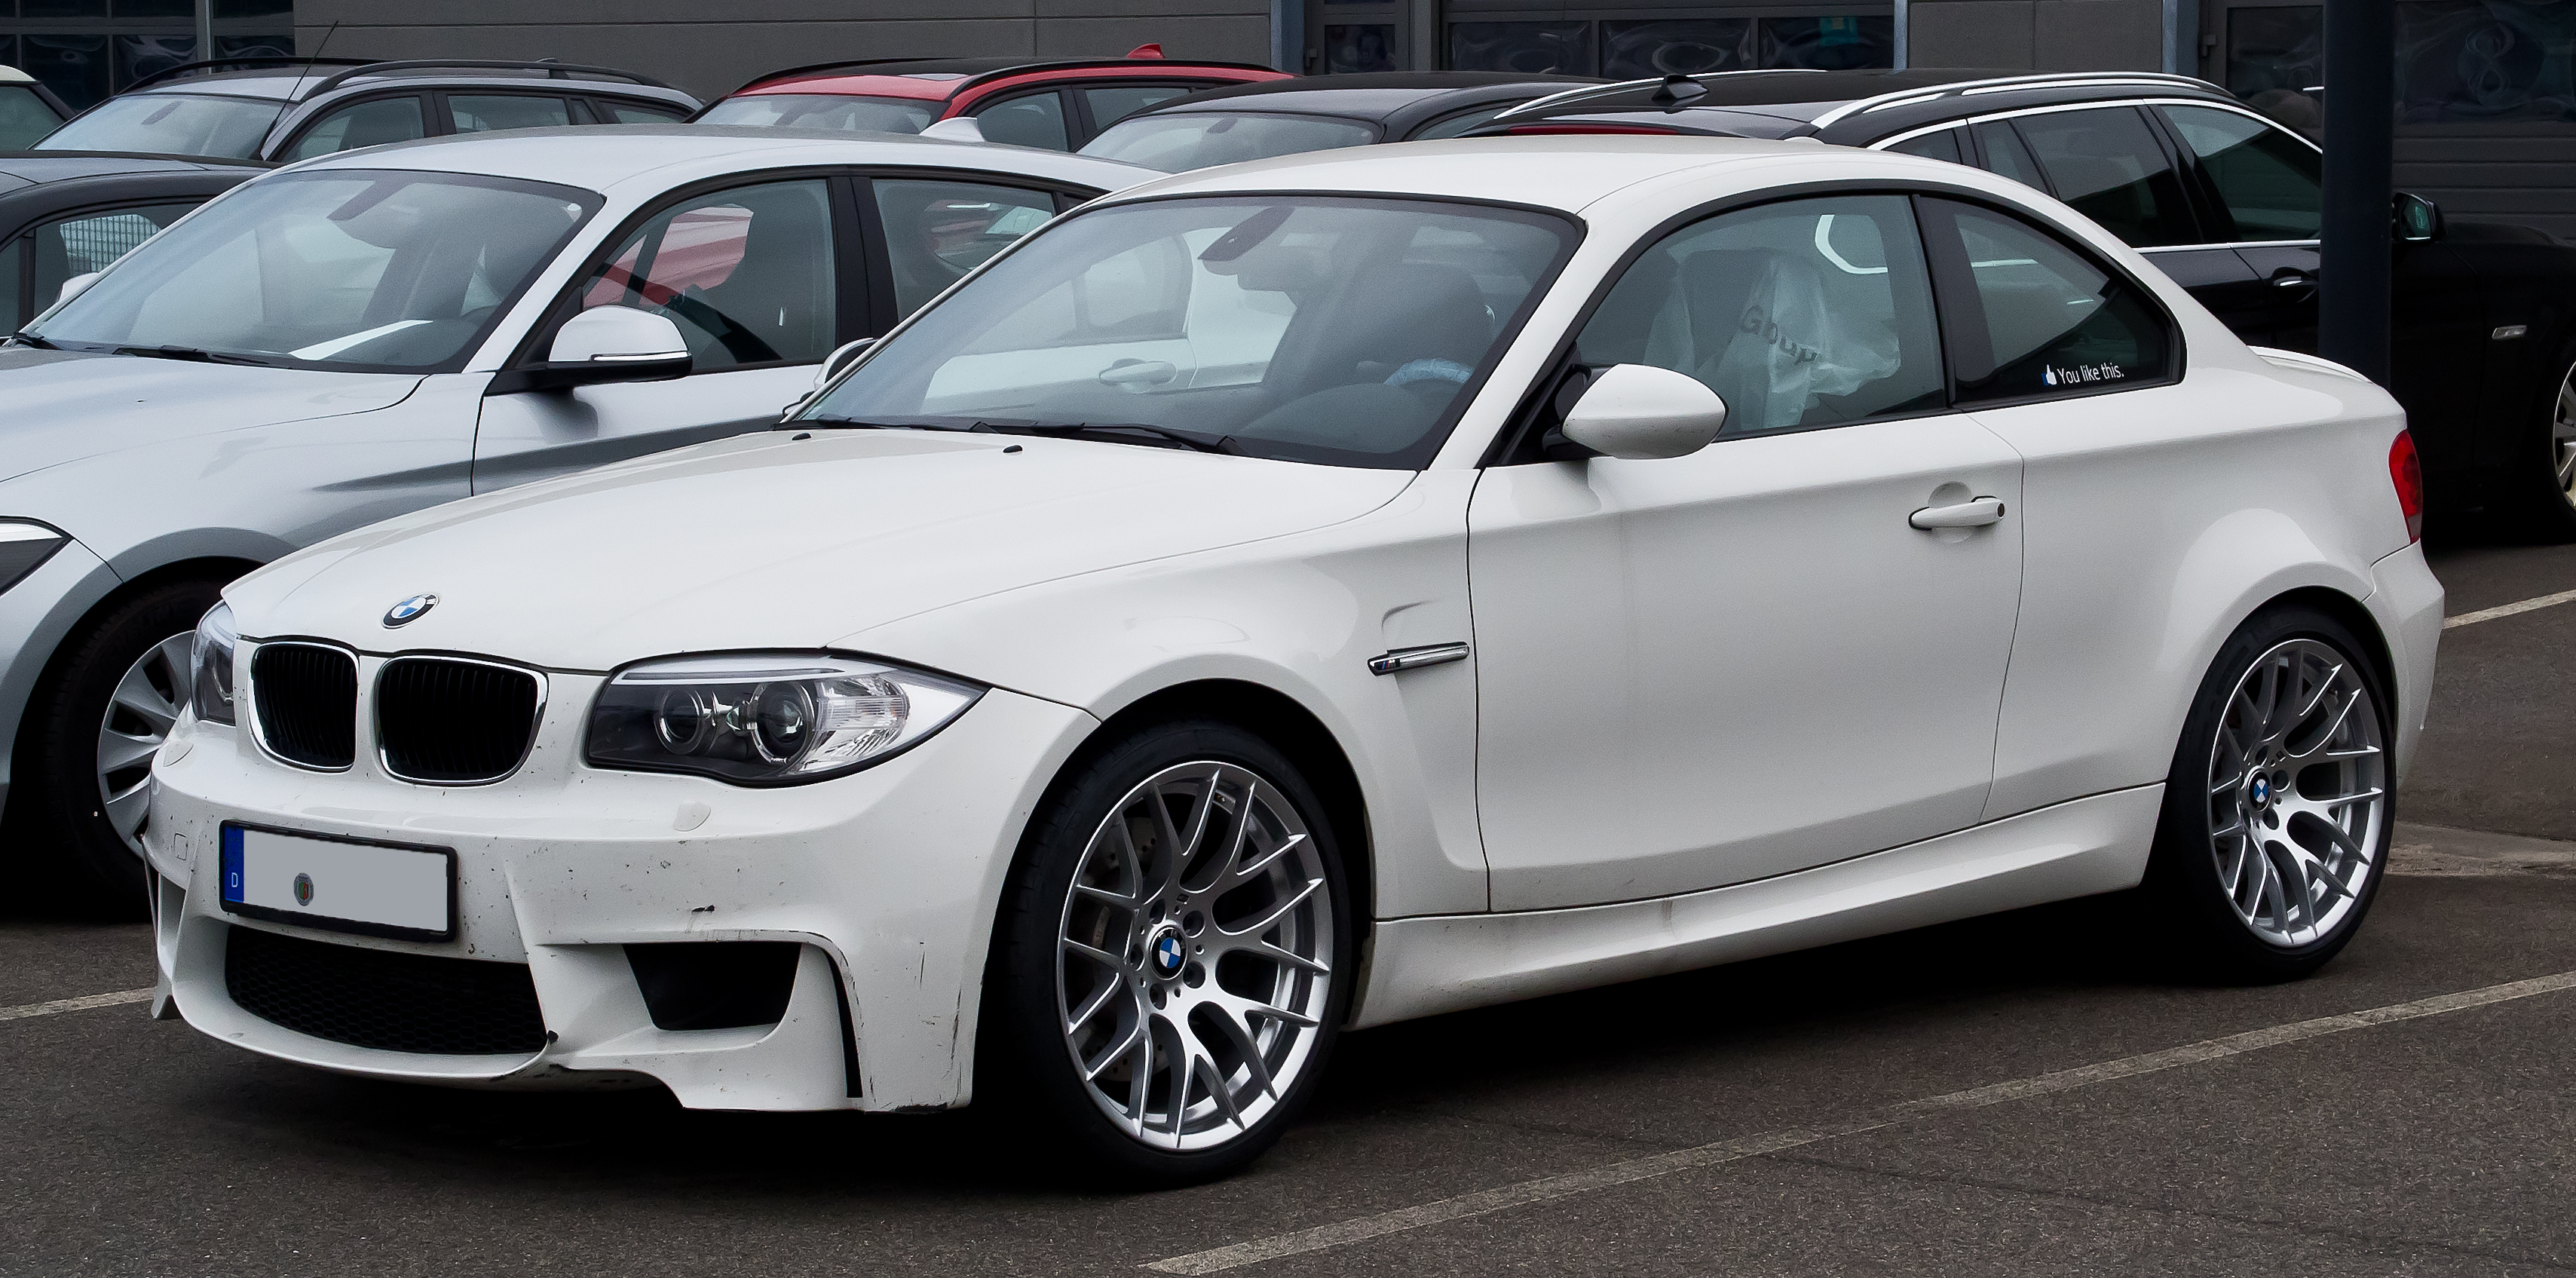 bmw 1er m coupe (e82) 2013 pictures #1